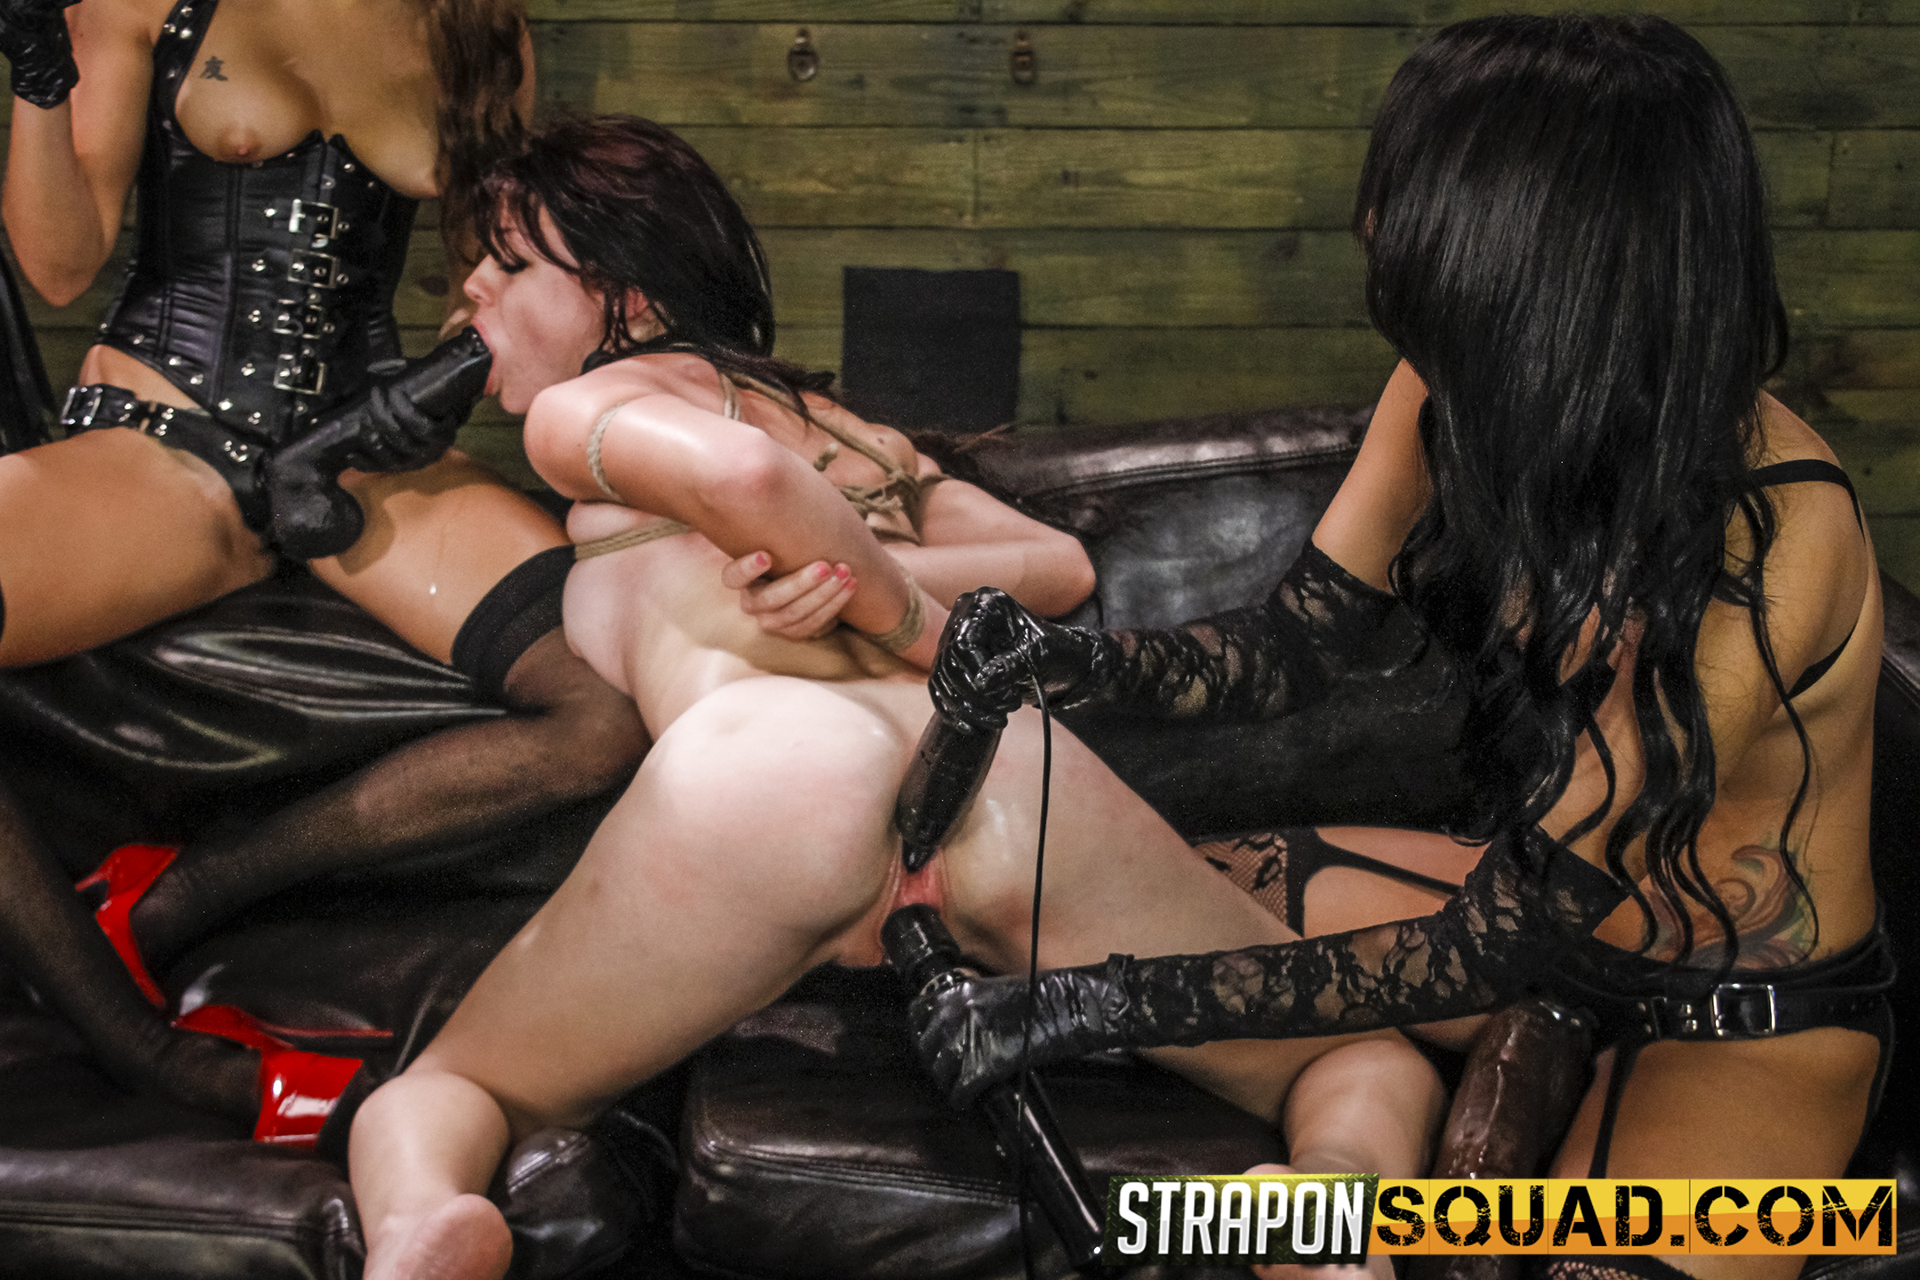 Sapphic Dominance & Sybian Saddle 3 Way With Kaisey Dean, Marina Angel, Esmi Lee